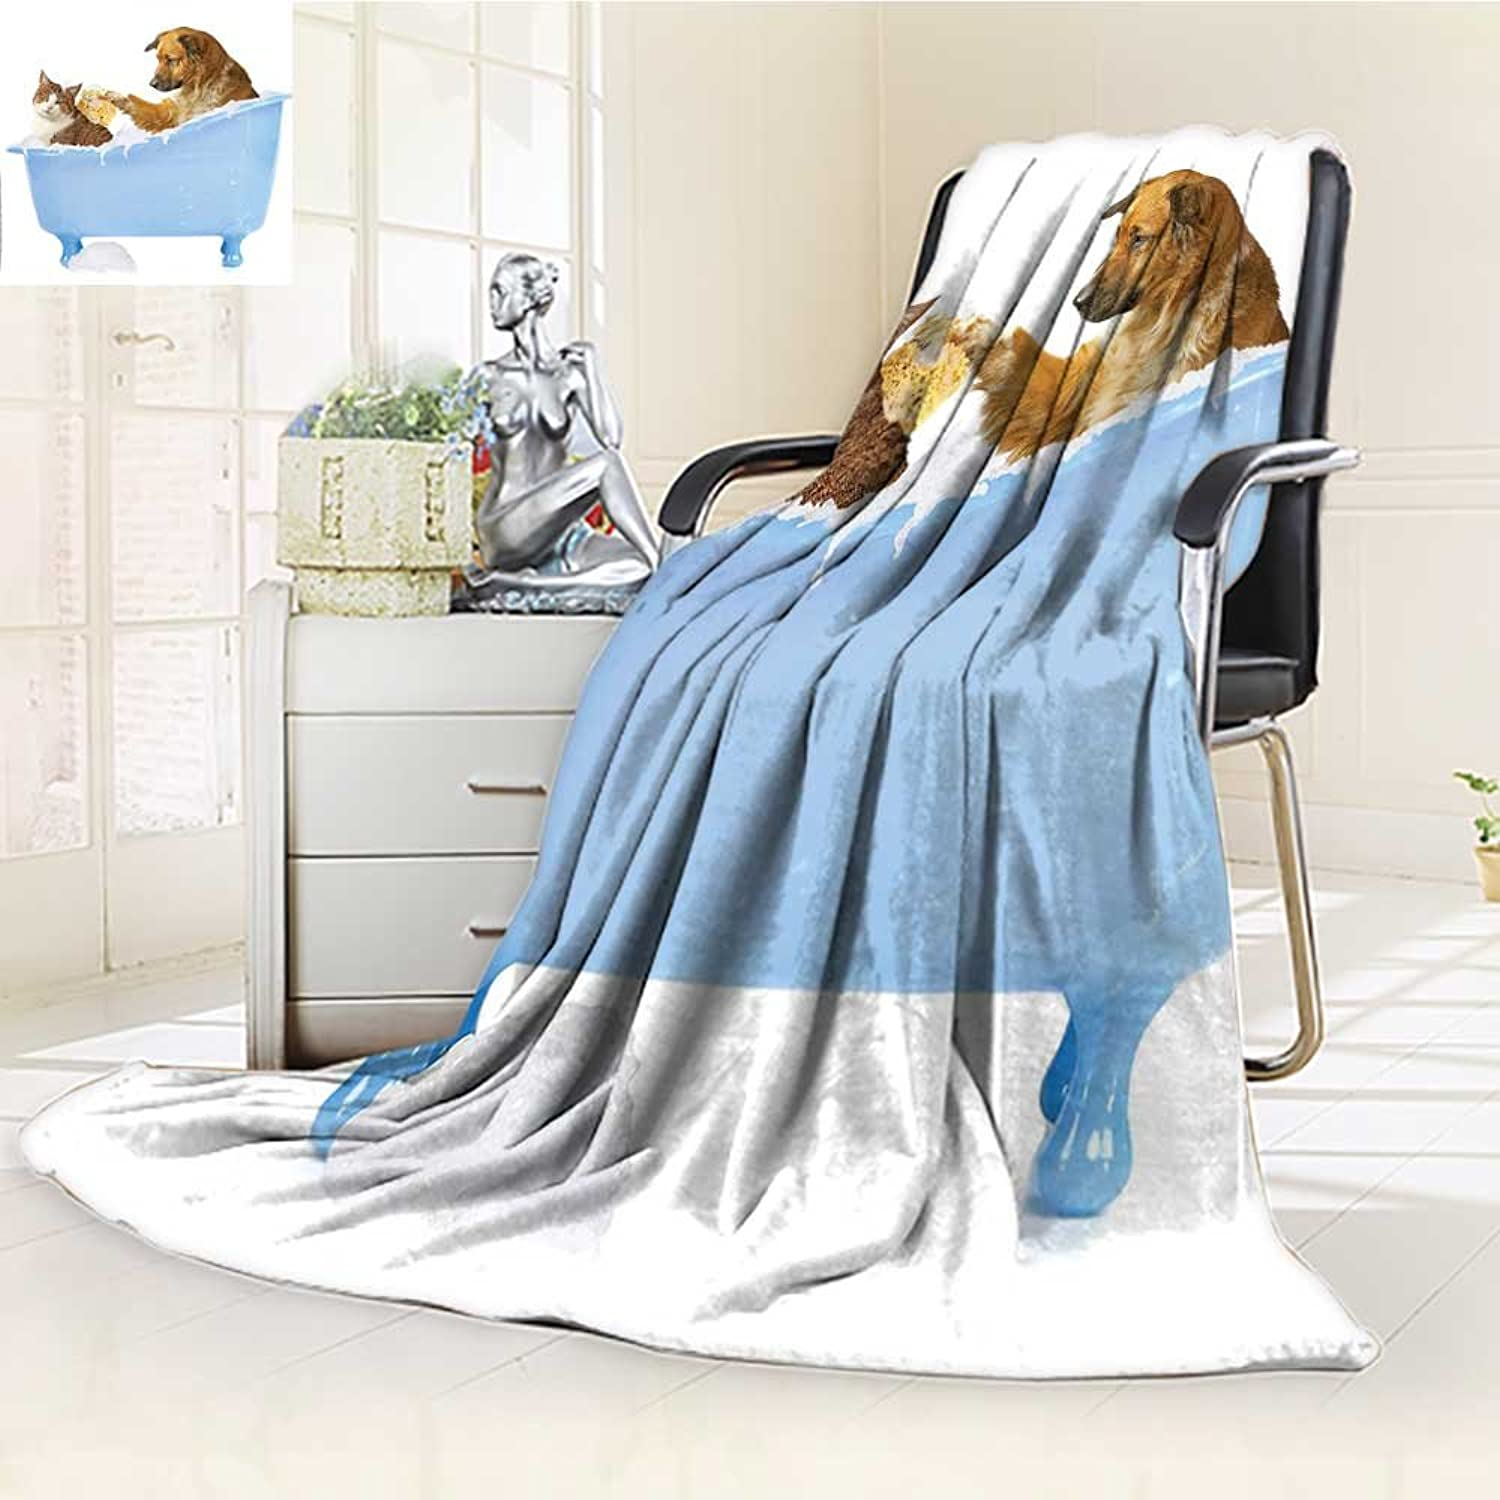 YOYI-HOME Original Luxury Duplex Printed Blanket, Hypoallergenic,and Kitty in The Bathtub Together with Bubbles Shampooing Having Shower Fun Artsy Print Multi Perfect for Couch or Bed W59 x H39.5